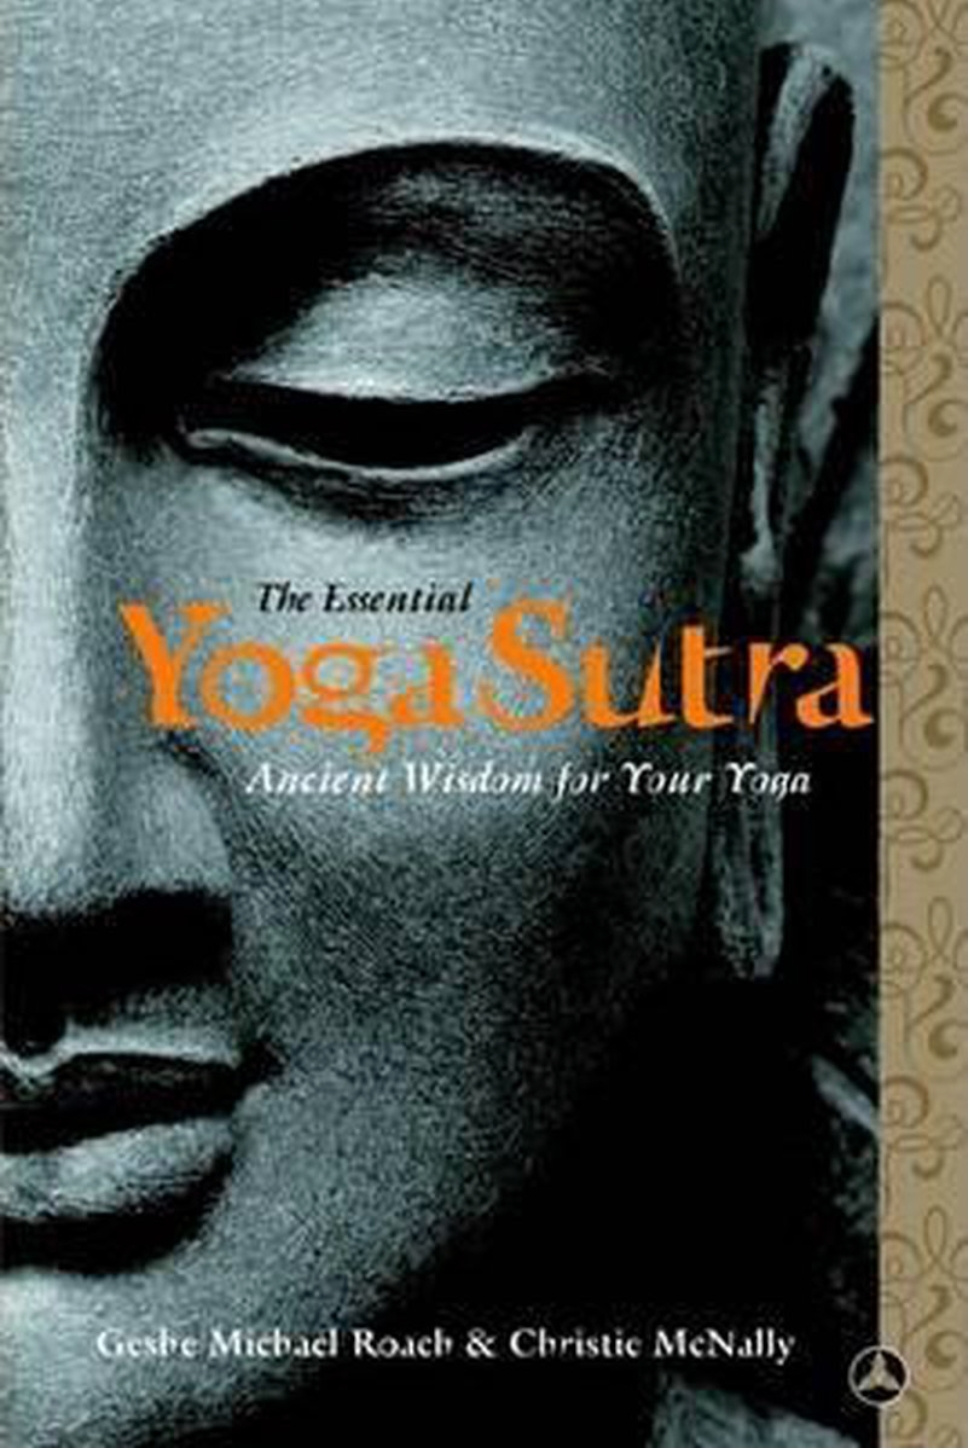 the essential yoga sutra, Roach & McNally